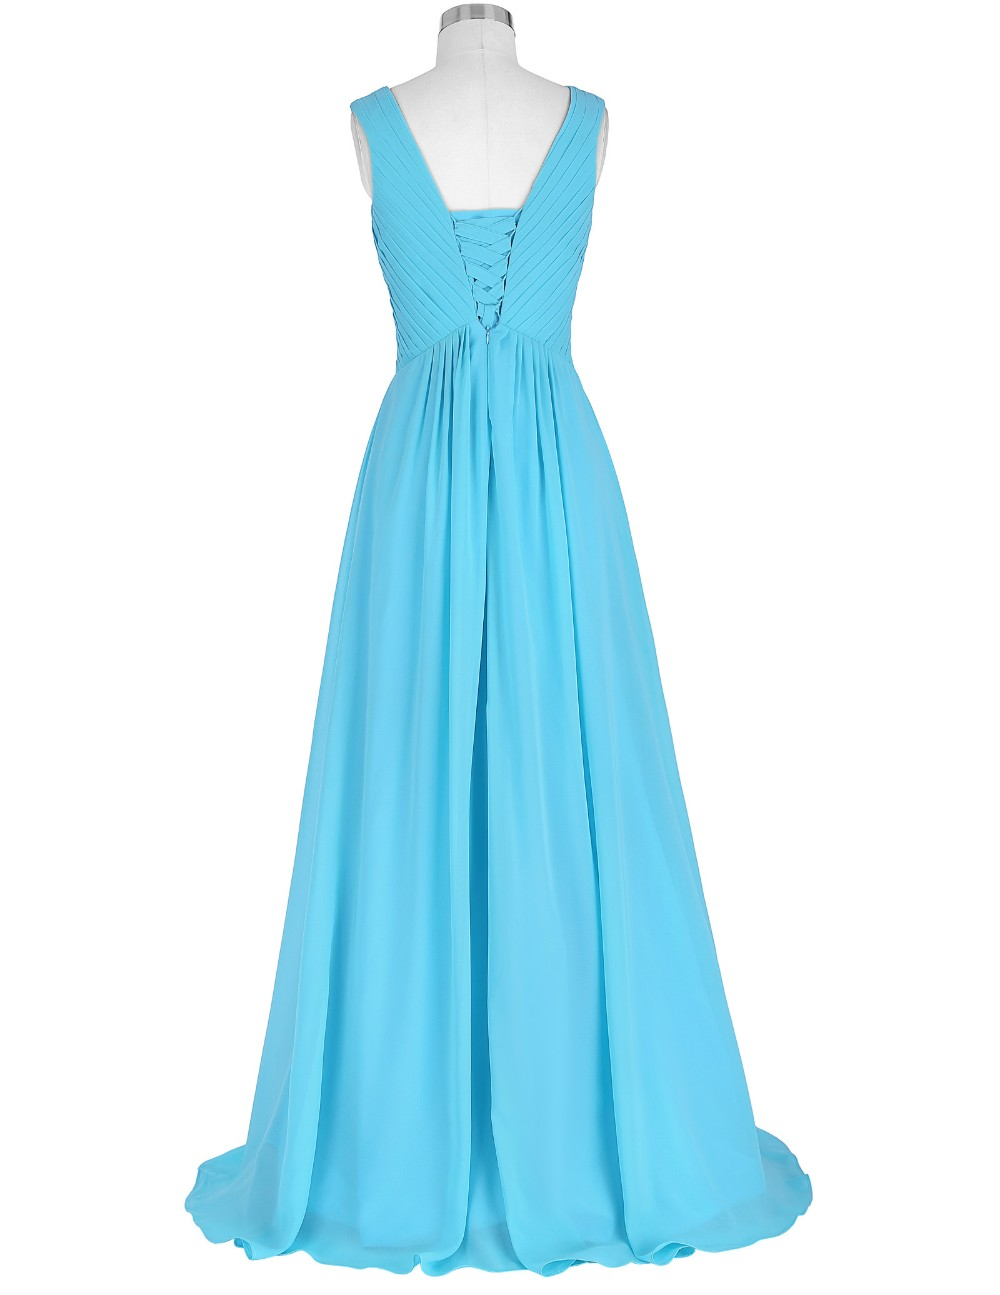 Grace Karin Sleeveless V-Neck Chiffon Sky Blue Long Prom Dress GK000128-2